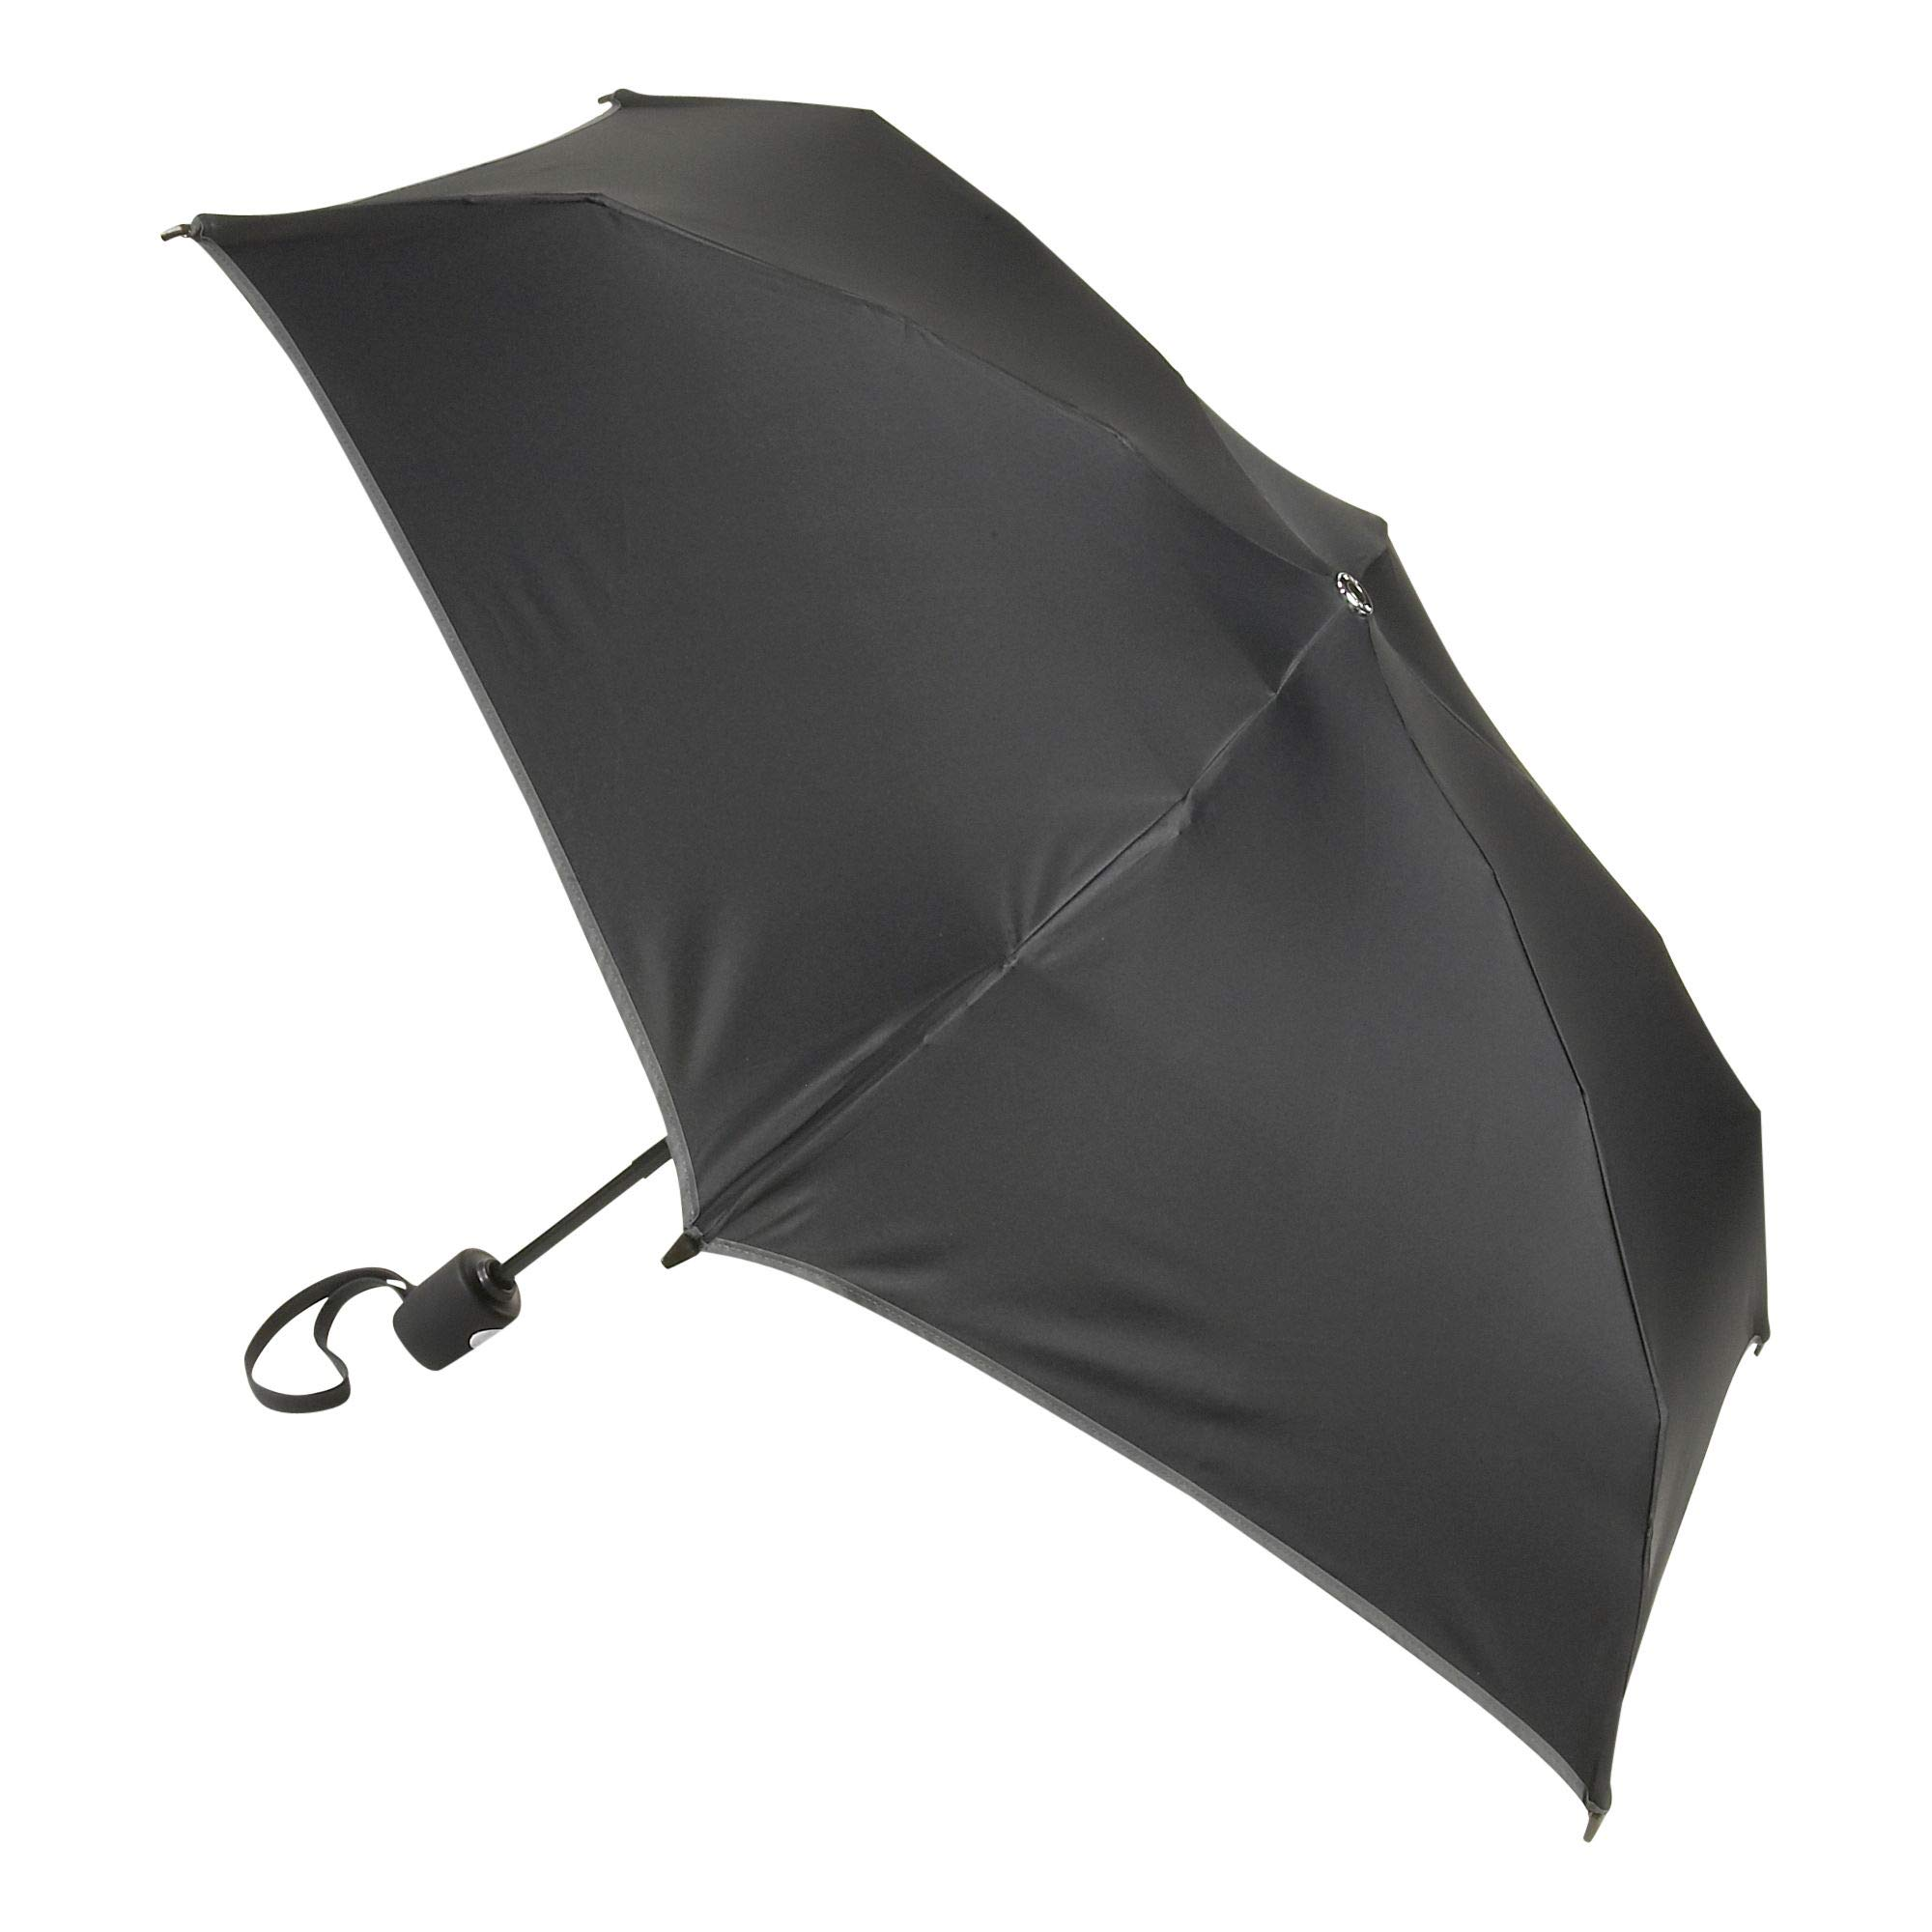 TUMI - Auto Close Umbrella - Windproof Compact Travel Umbrella - Small - Black by TUMI